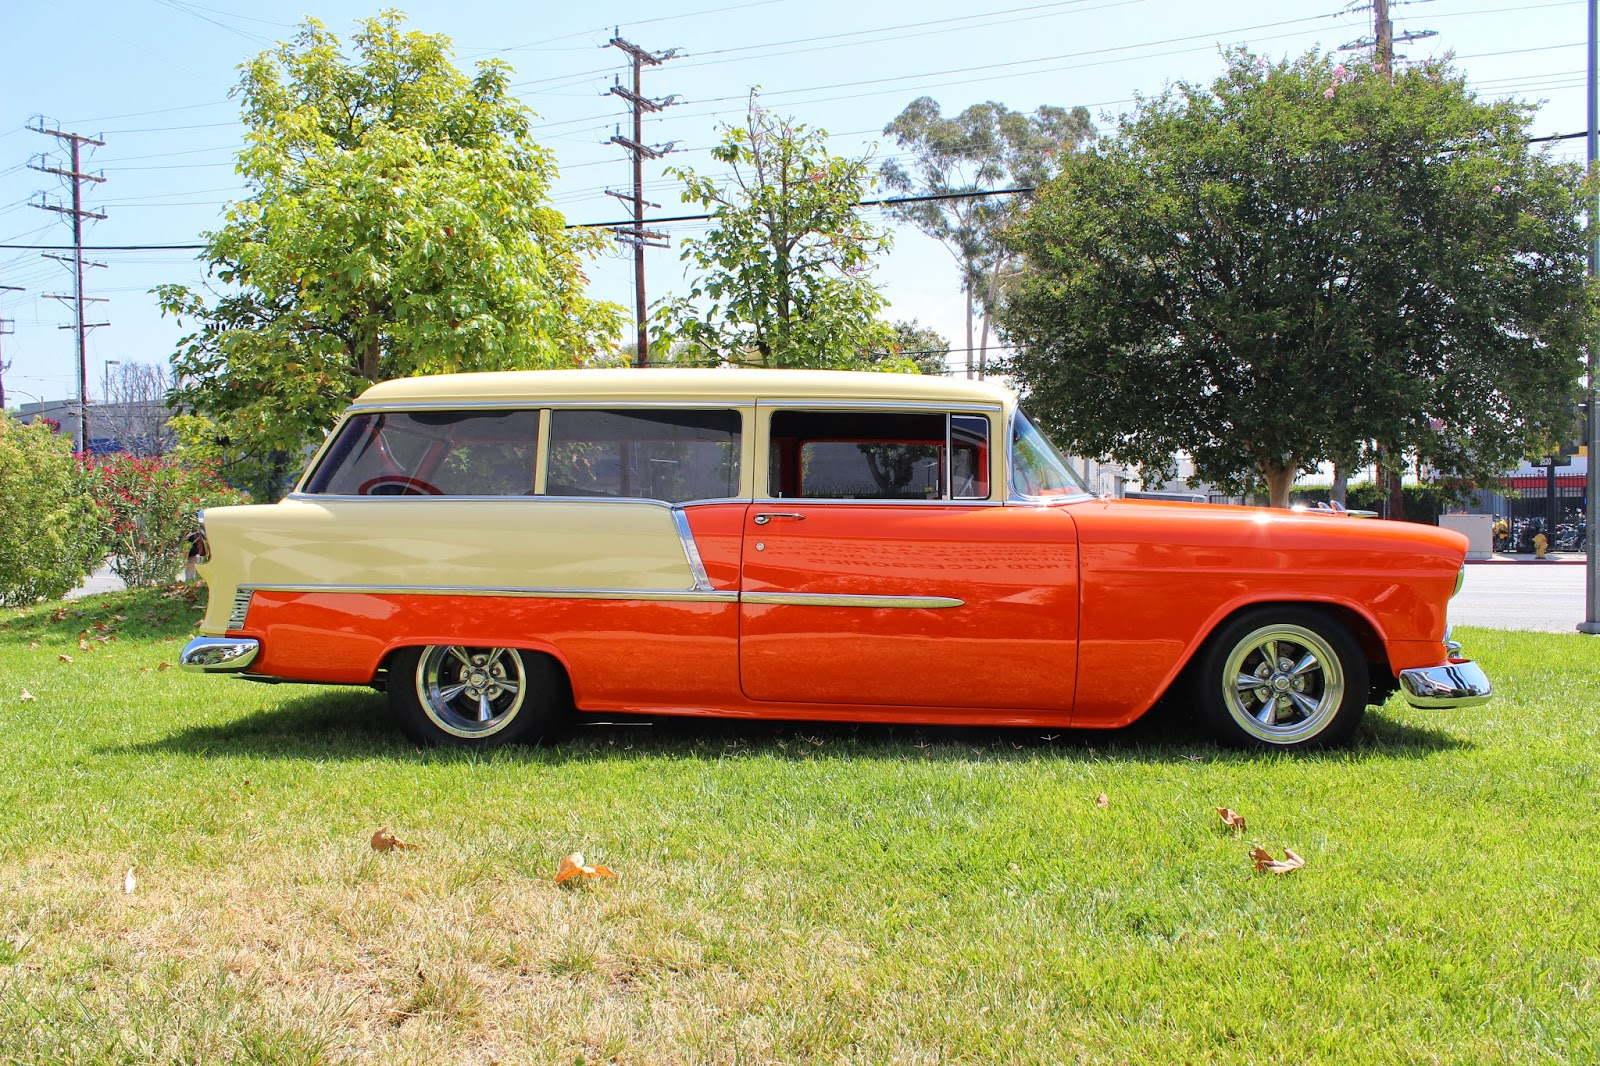 1955 chevrolet handyman 2 door wagon street rod - 1955 Chevy Handyman Wagon From Our August Catalog Cover